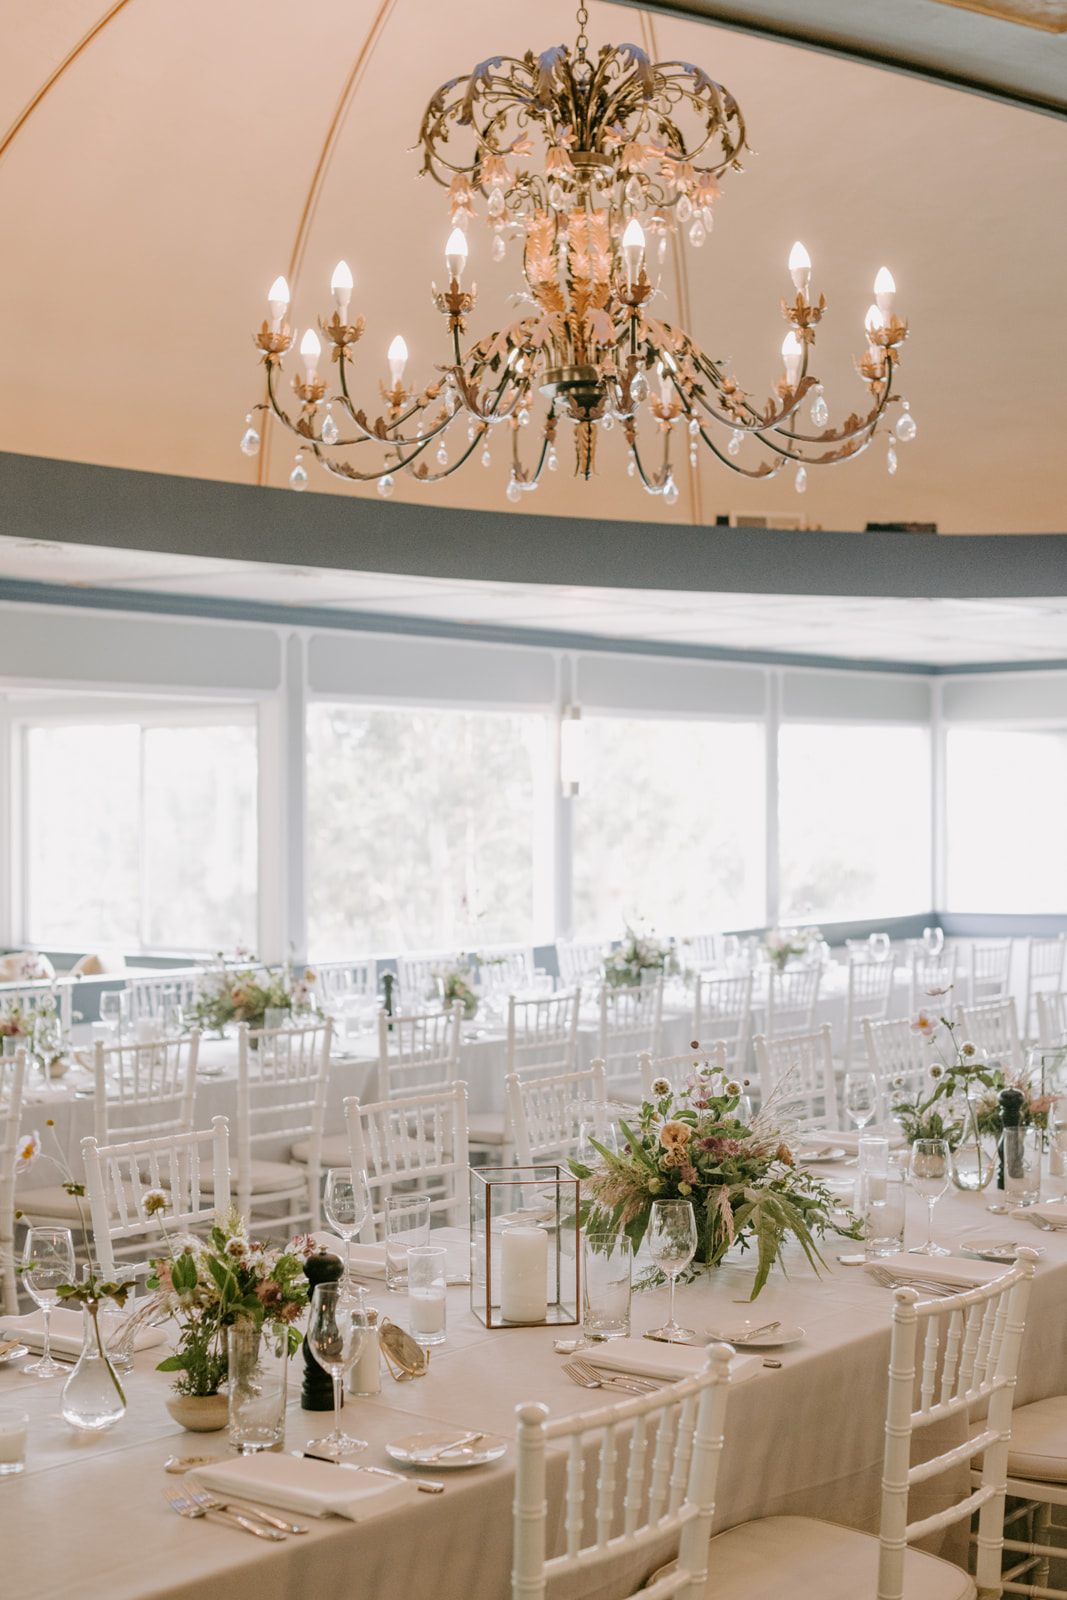 Fine art wedding flowers in light earth tones by Venn Floral photographed by Kristen Marie Parker in Northern California